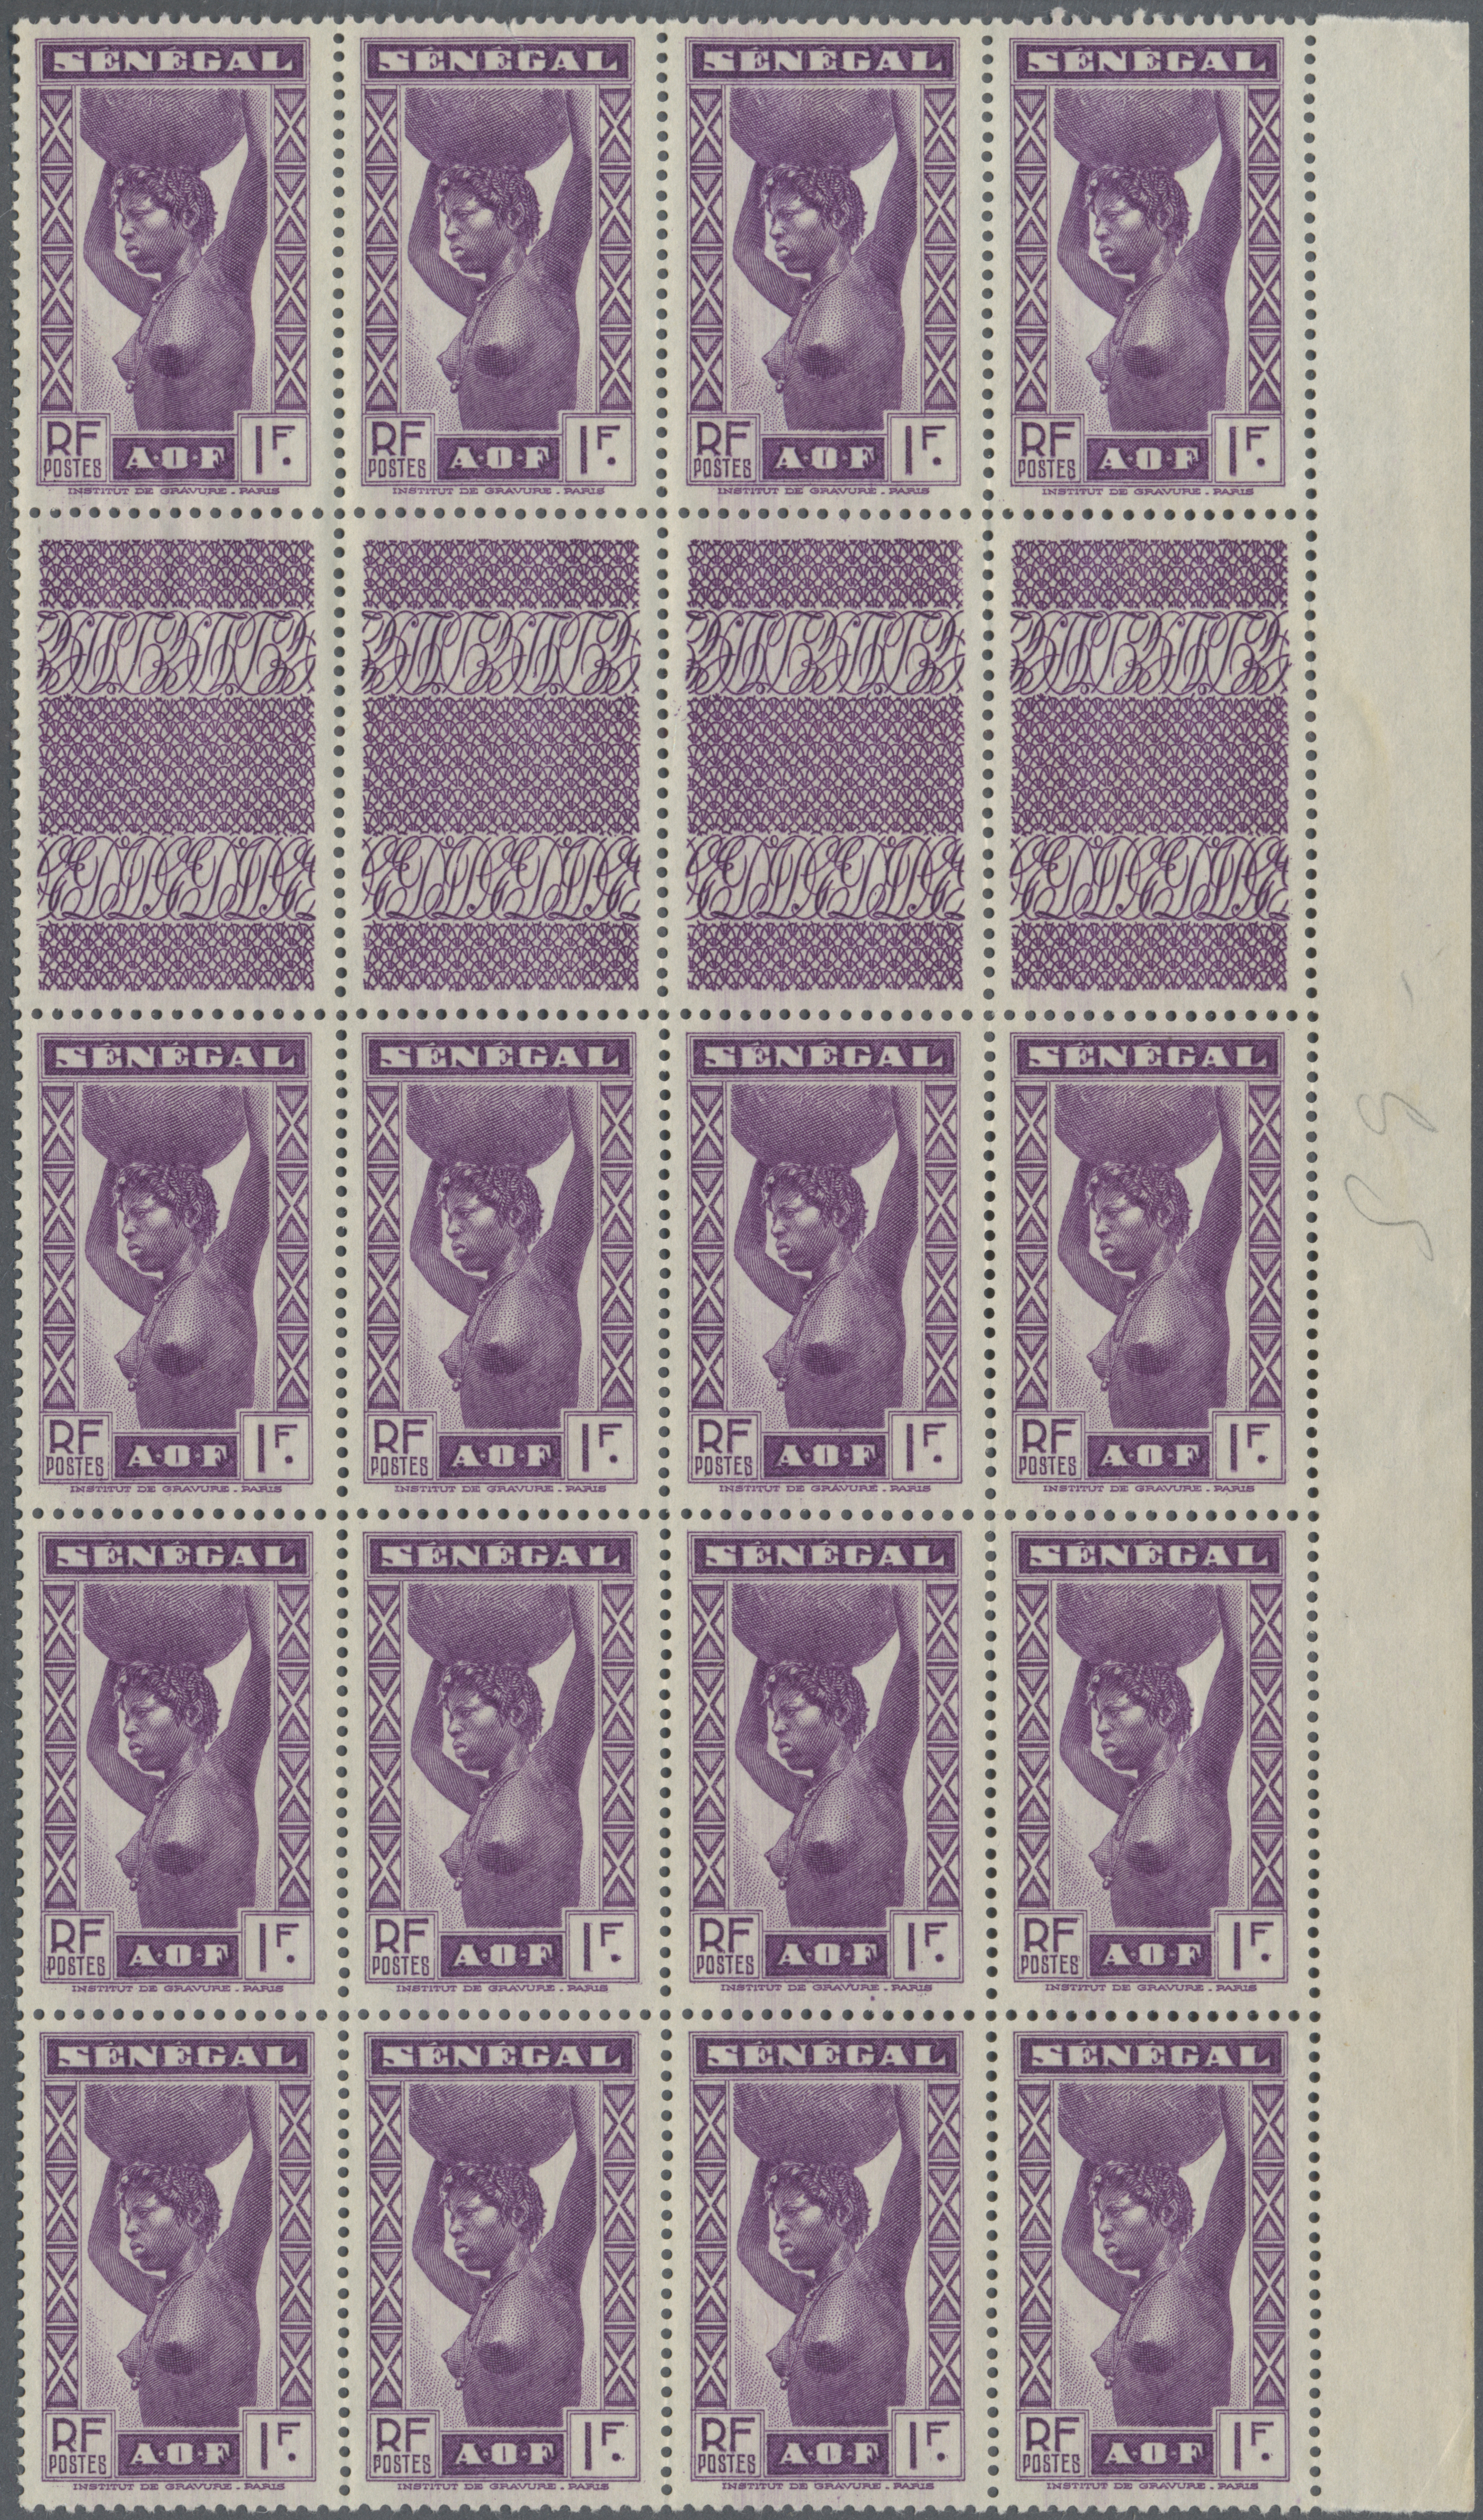 Lot 26896 - senegal  -  Auktionshaus Christoph Gärtner GmbH & Co. KG Sale #46 Gollcetions Germany - including the suplement